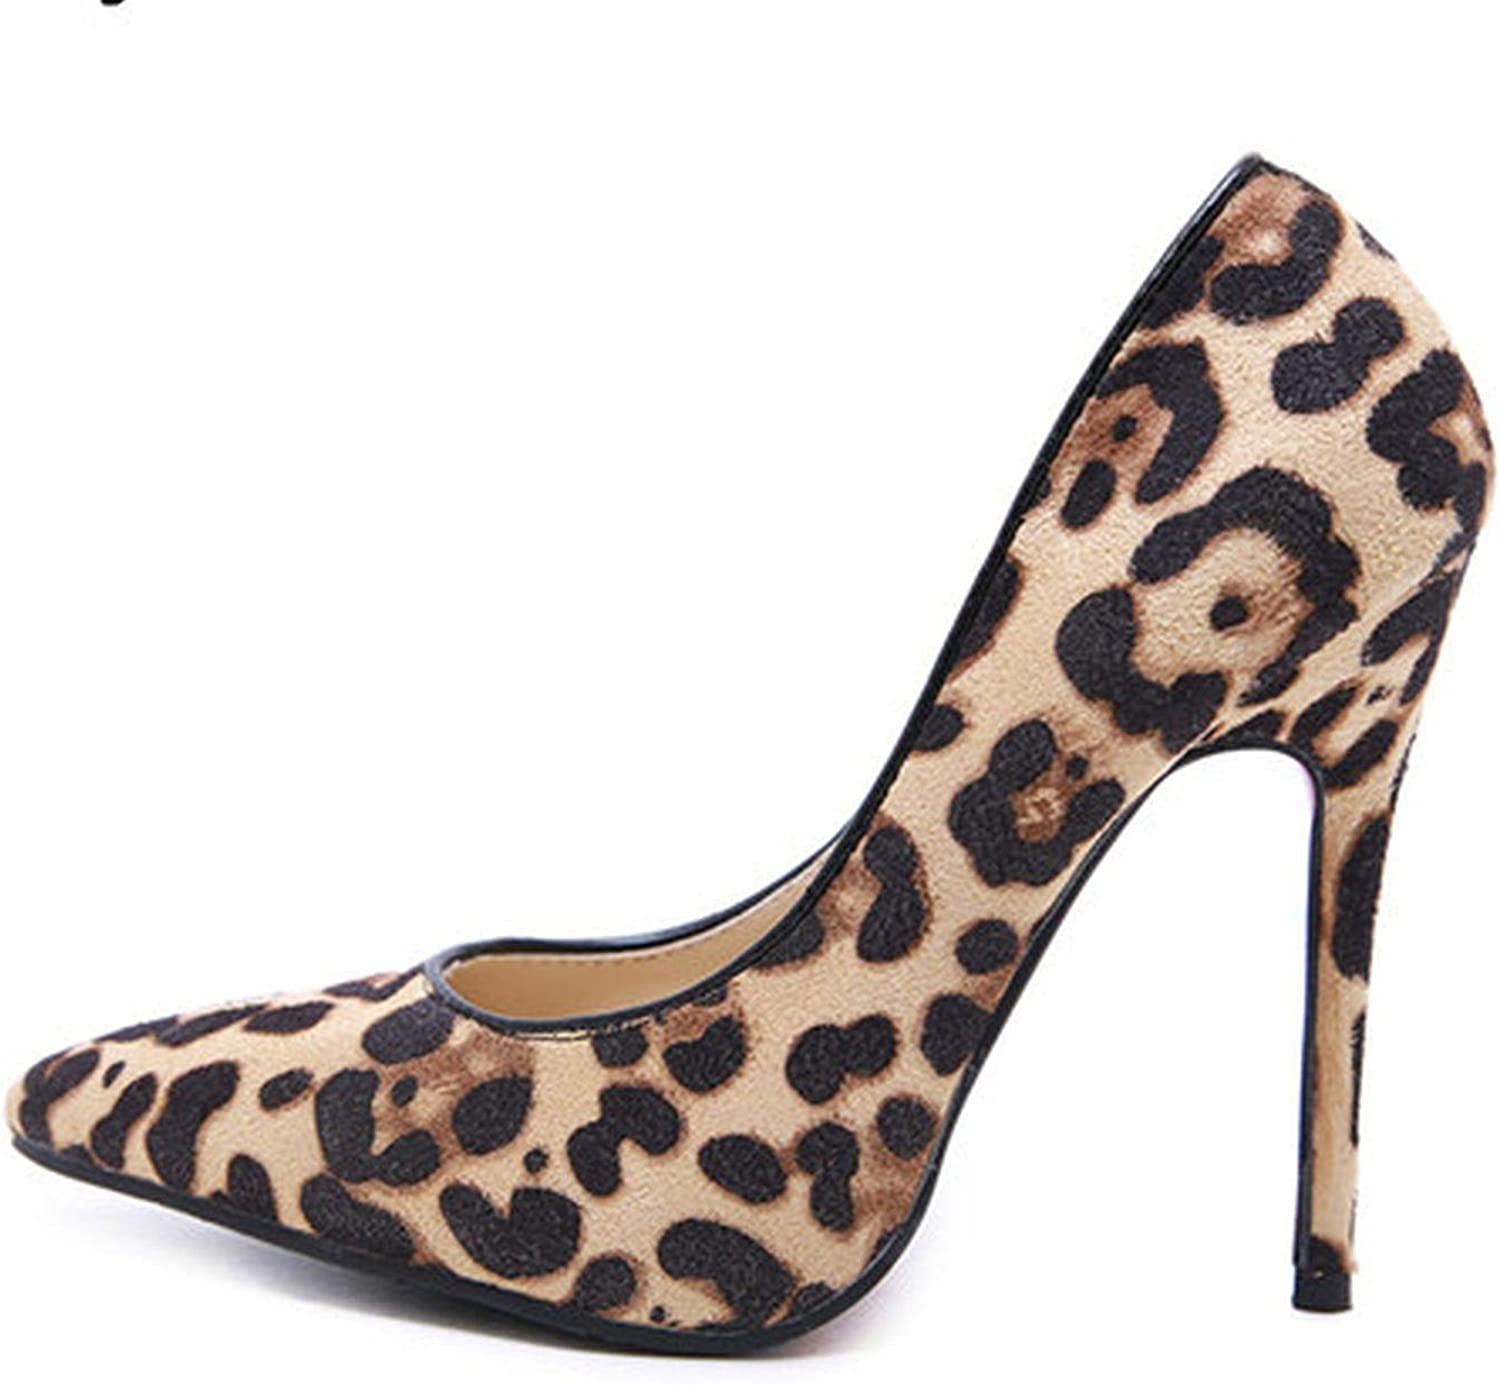 Youthern Leopard Grain Women shoes Sexy Pointed Toe High Heels 12Cm Summer Party Pumps Wedding shoes